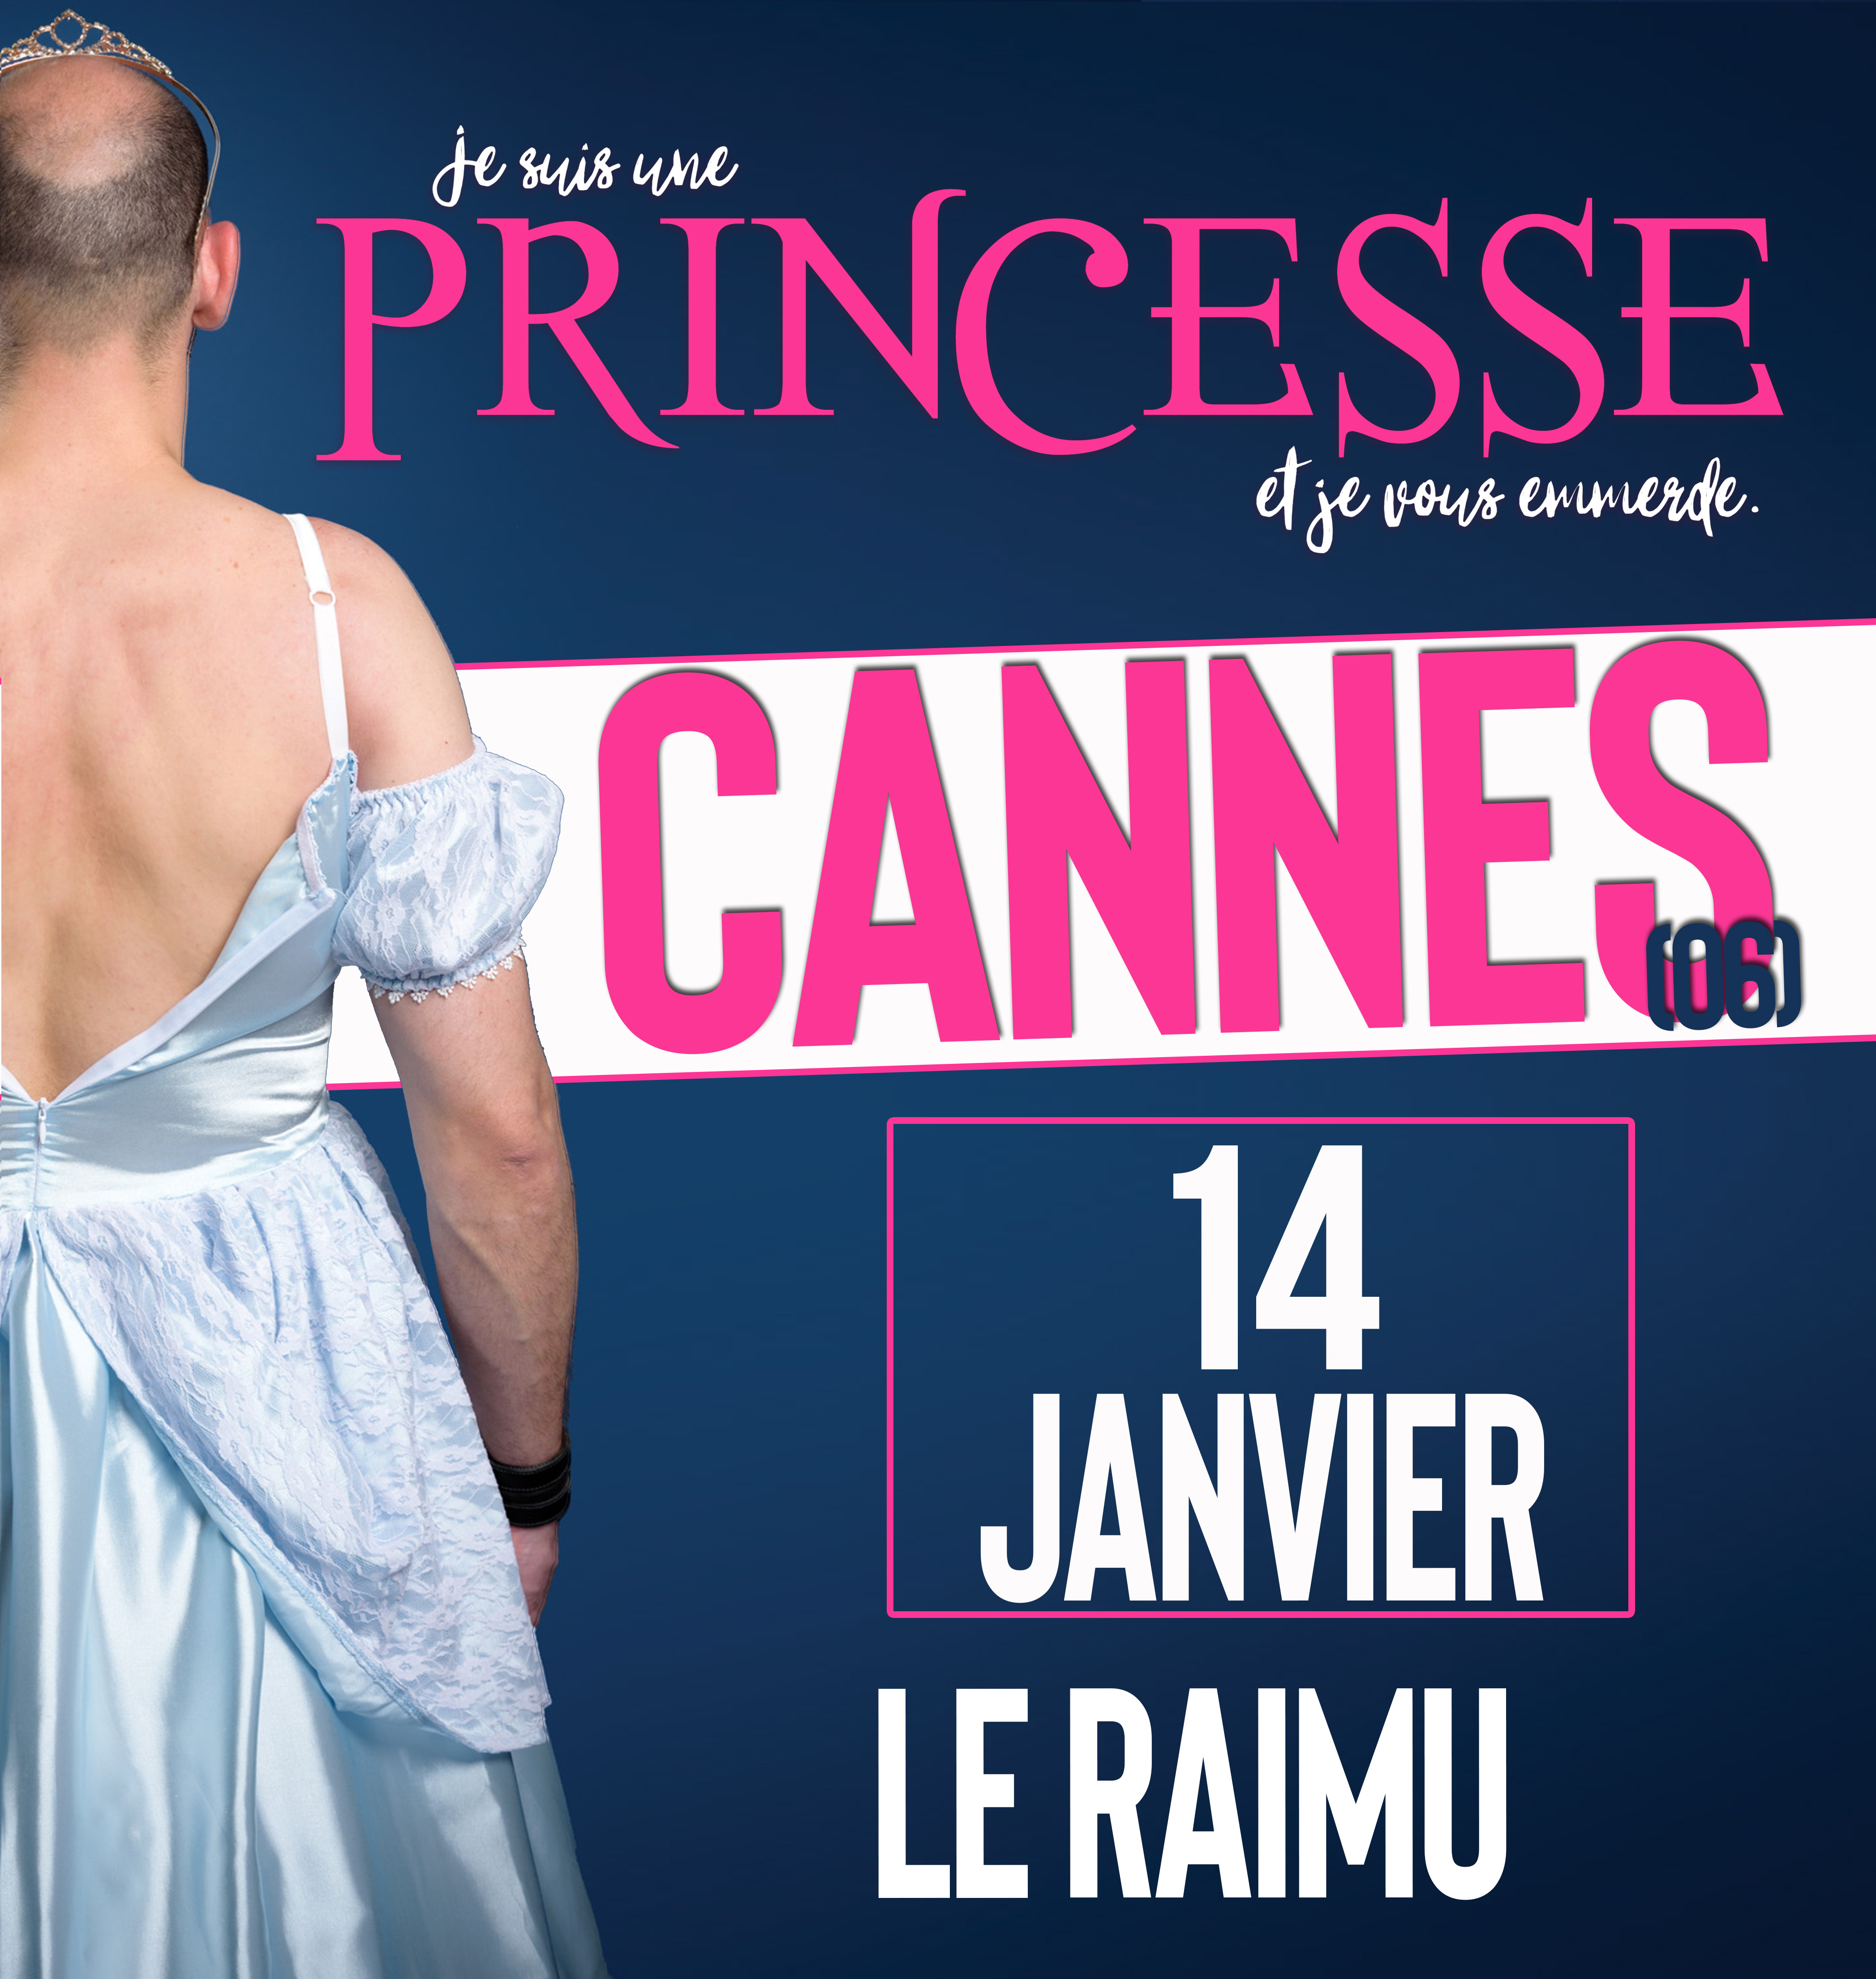 cannes21-01